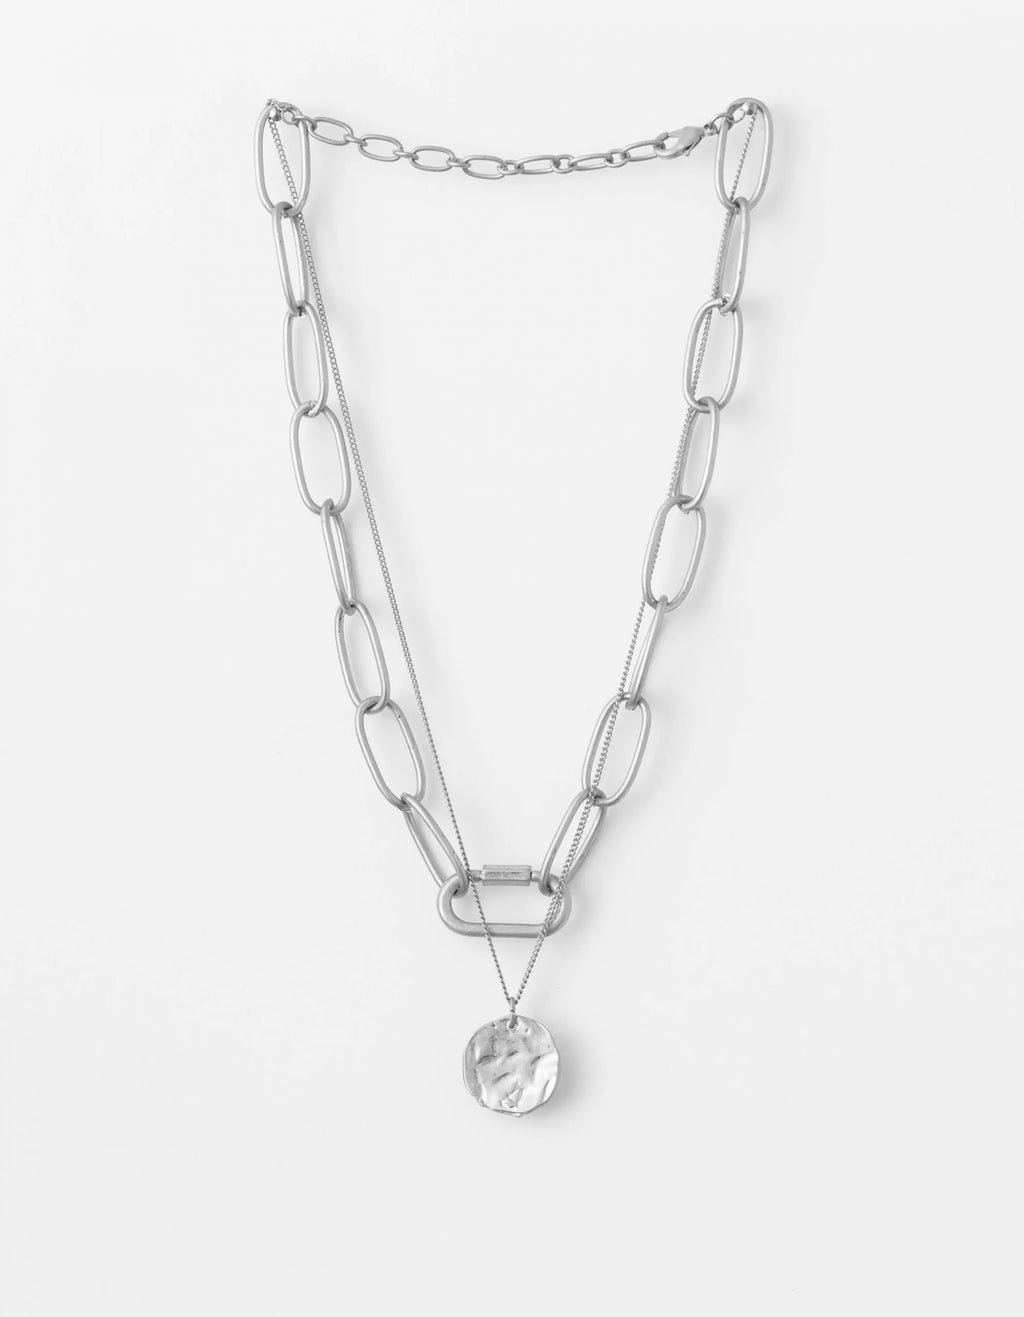 STELLA + GEMMA SILVER CHAIN AND PENDANT NECKLACE